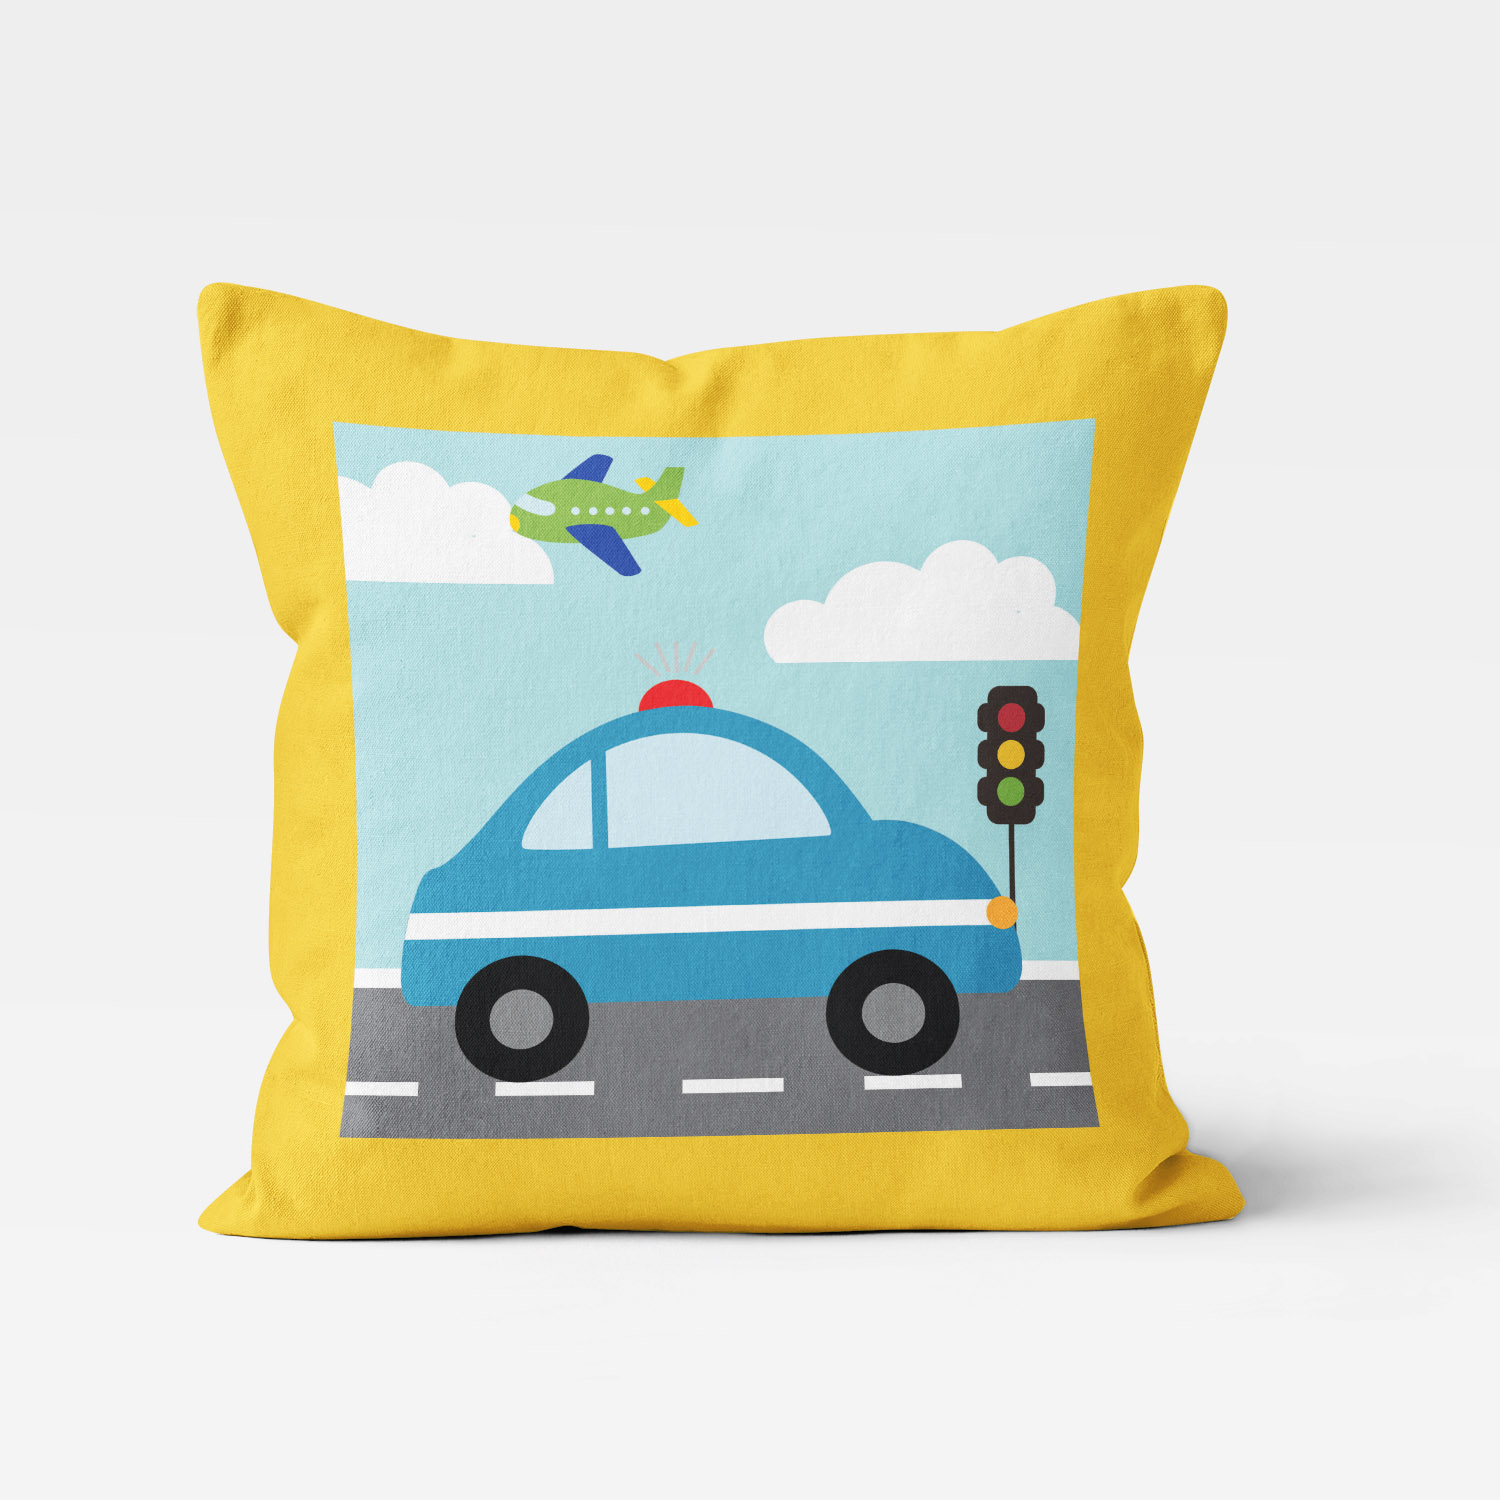 TTGV-PIL18X18-D TTGV-PIL18X18-A Things That Go Vroom Transportation Theme Police Car Boys Kids Accent Throw Pillow Room Decor Accessories by Pickleberry Kids